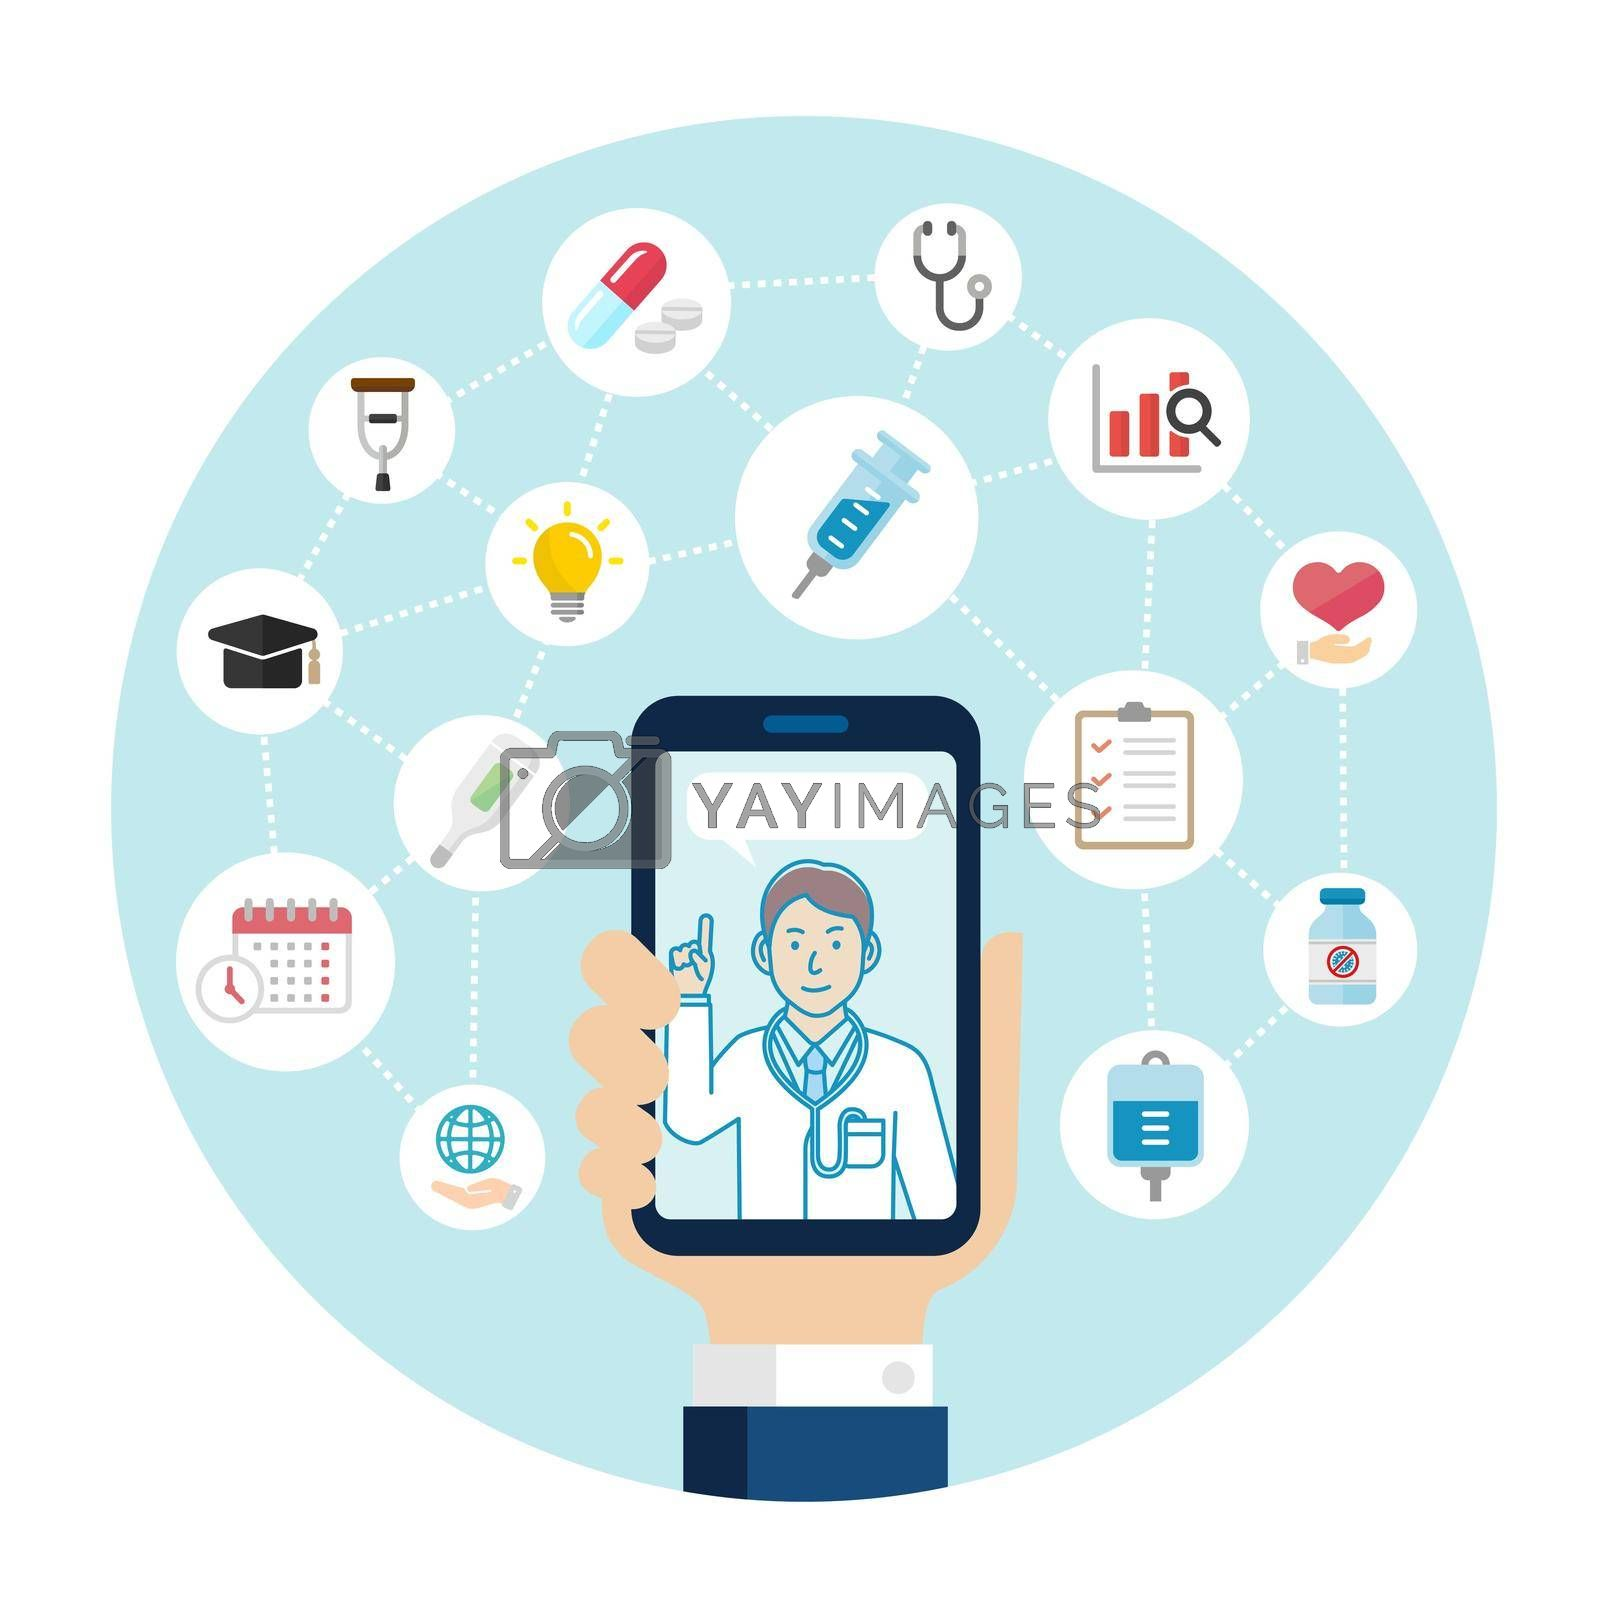 Royalty free image of Telemedicine,  telehealth concept banner illustration (round type) by barks